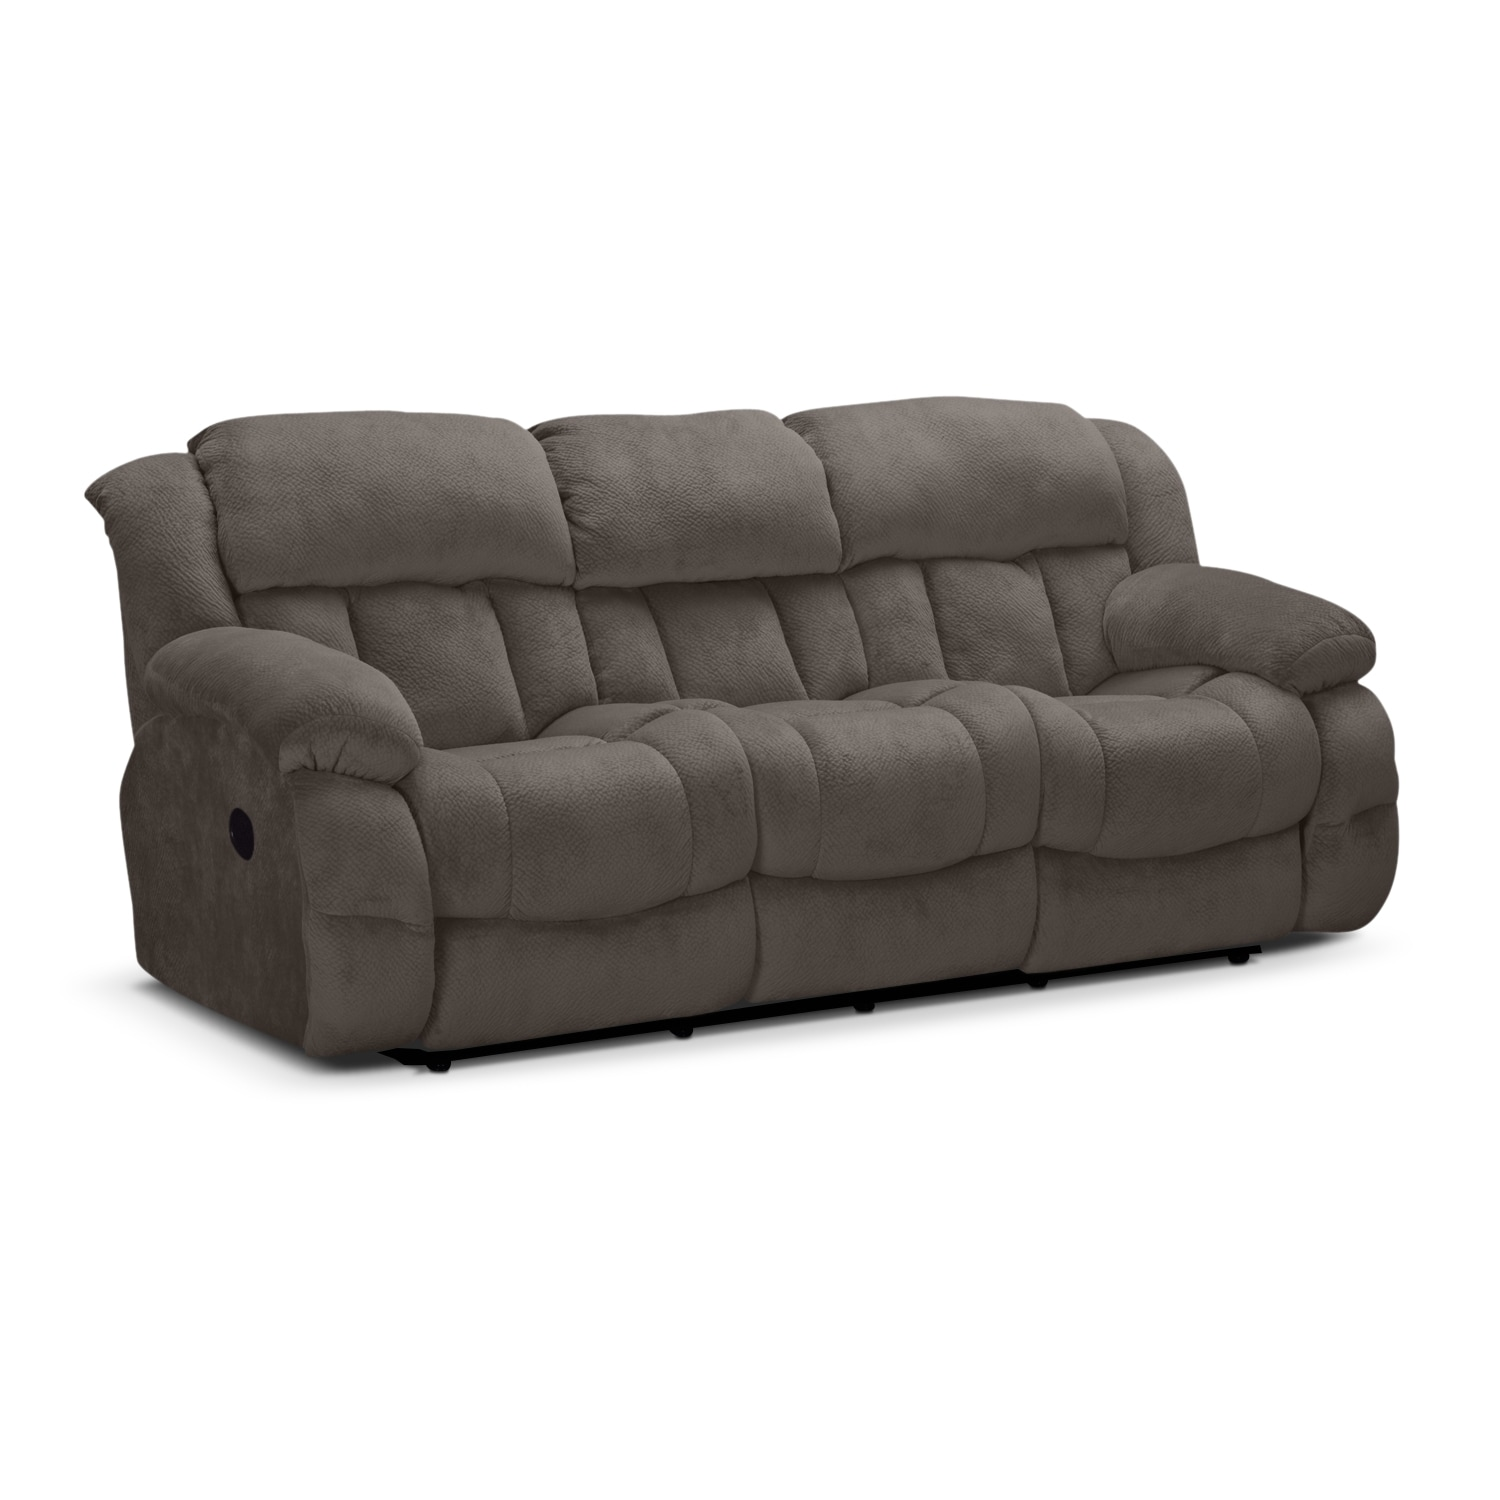 Living Room Furniture - Park City Dual Reclining Sofa